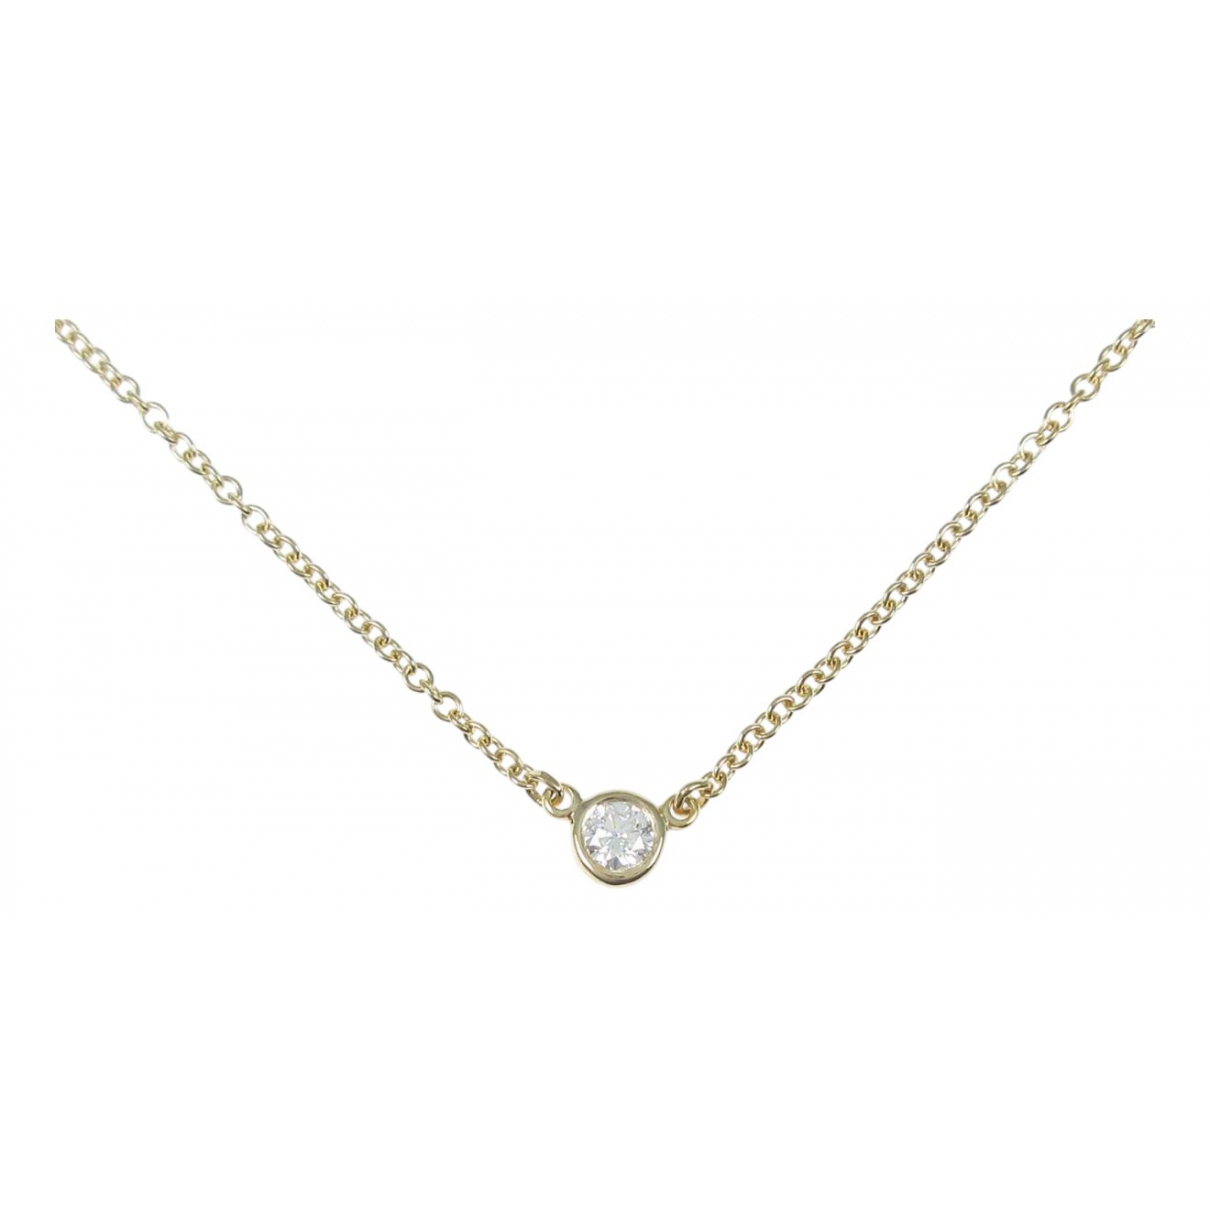 Tiffany & Co \N Yellow Yellow gold necklace for Women \N